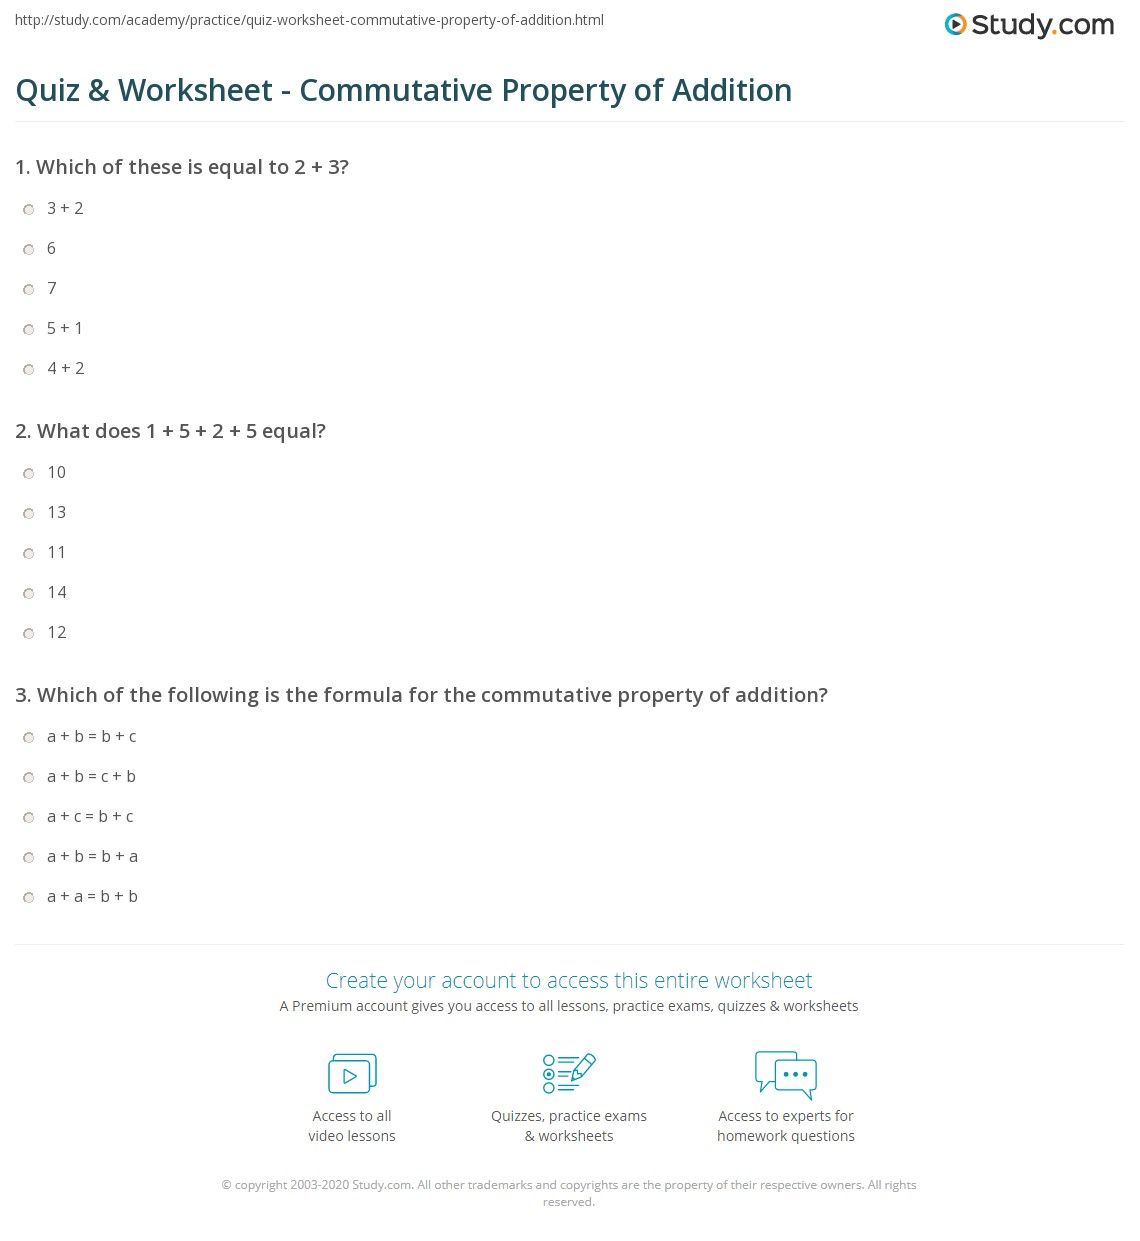 Quiz and Worksheet Commutative Property of Addition – Commutative Property of Addition Worksheet